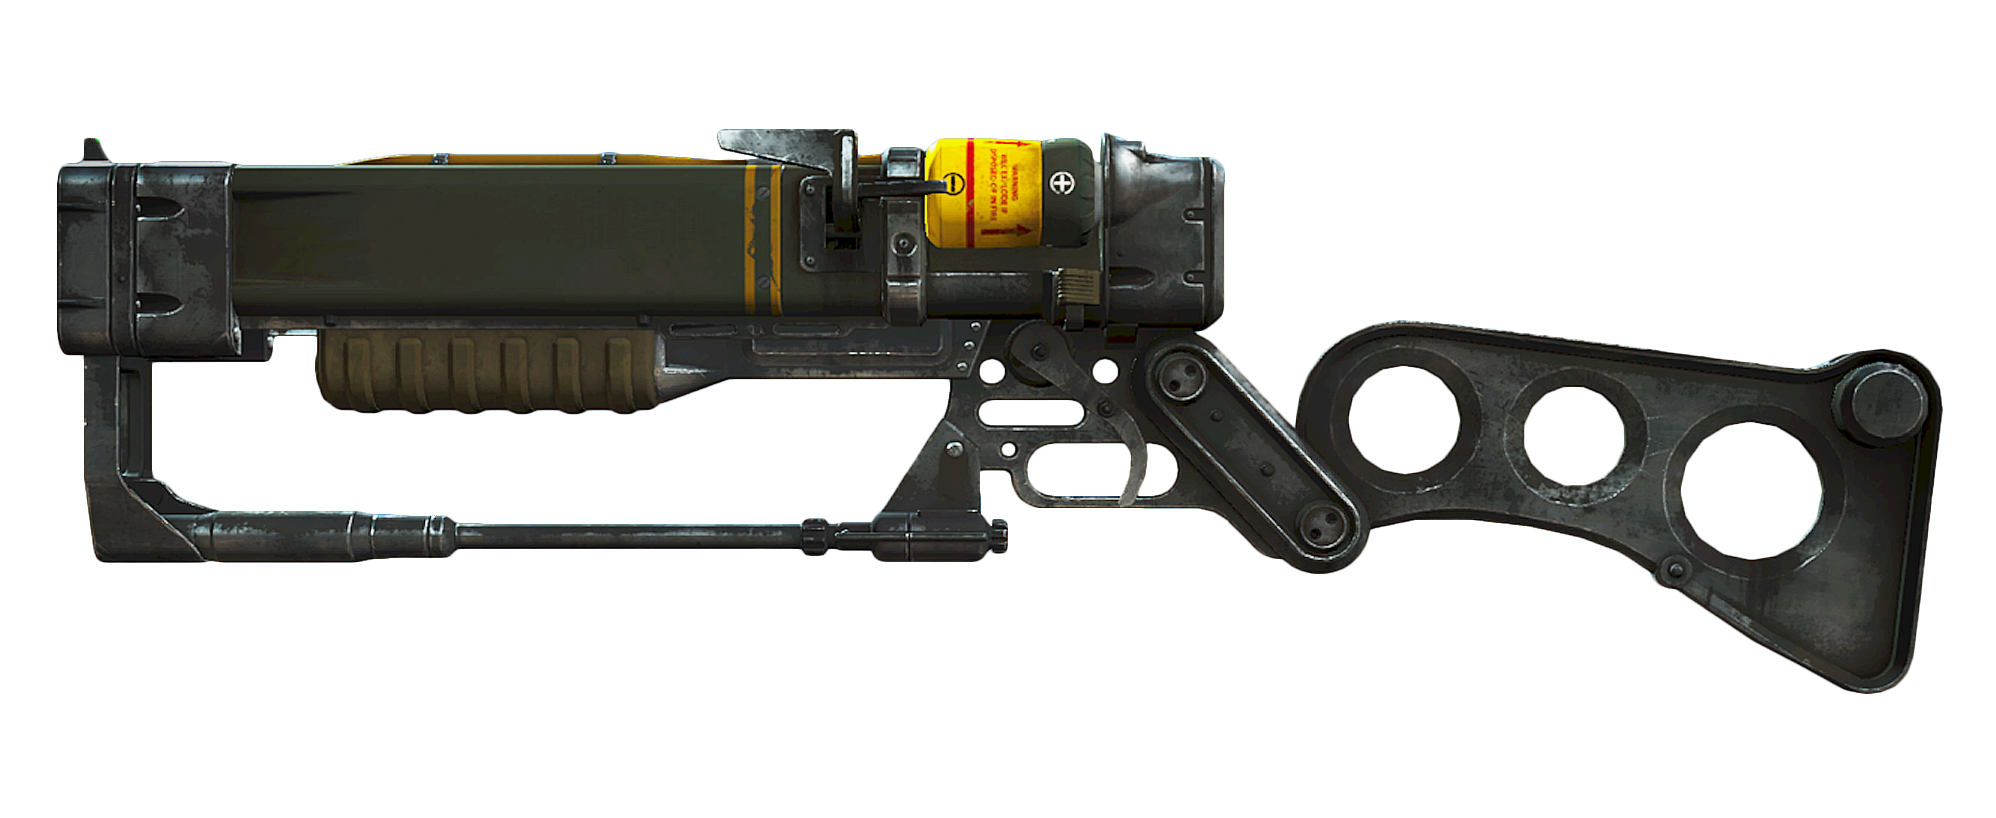 Cardboard lazer cannon png. Prototype up limitless potential